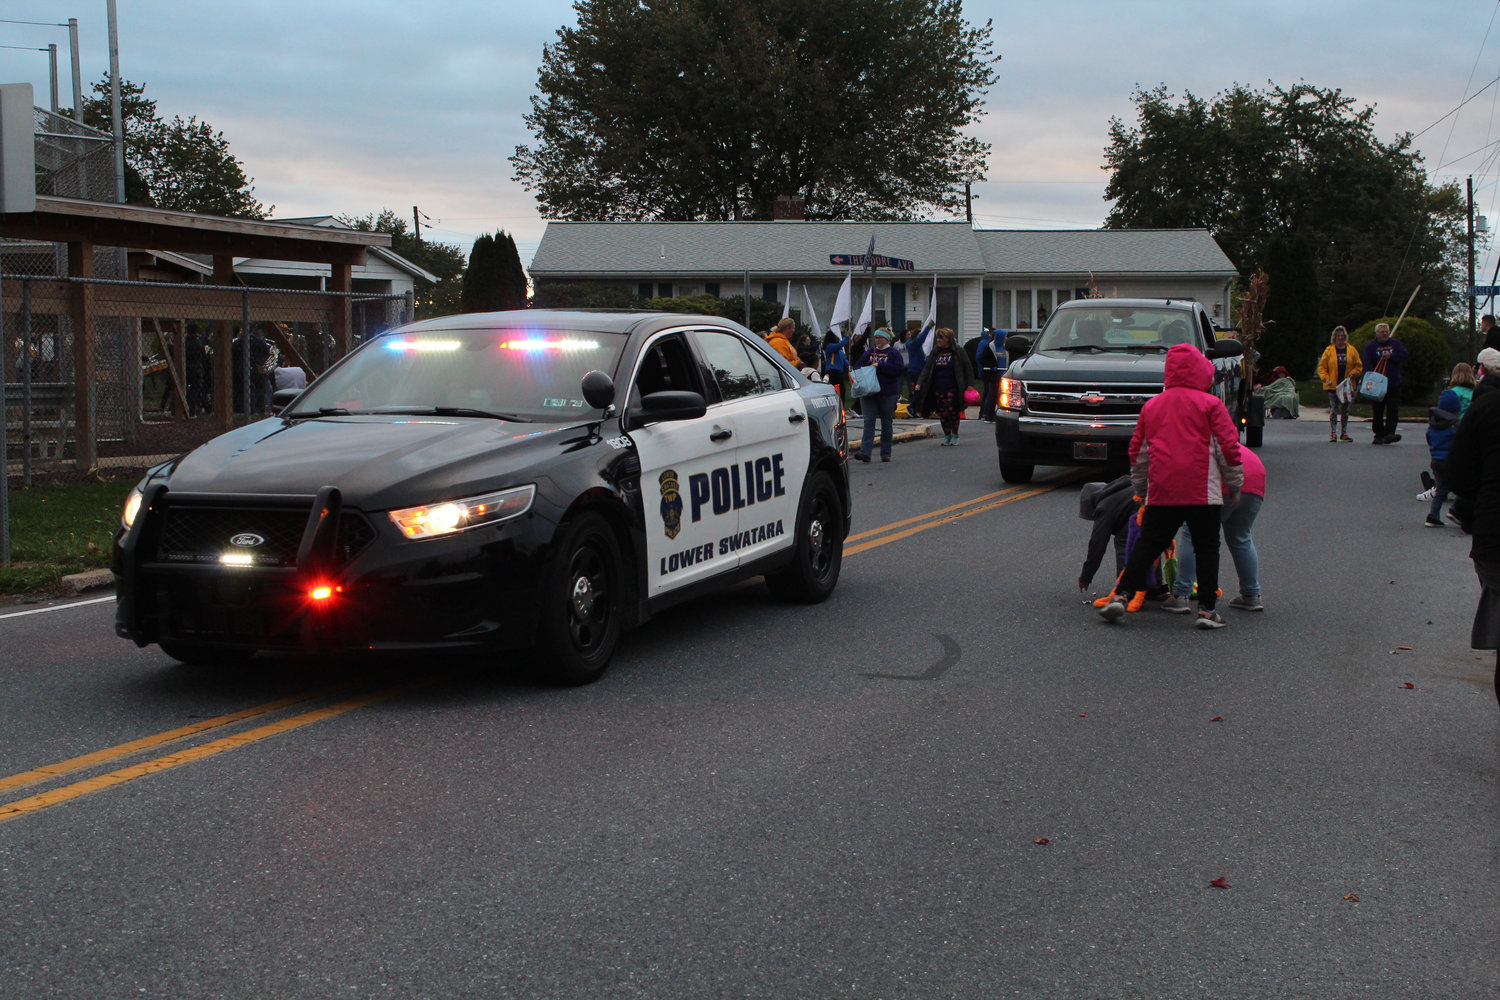 A Lower Swatara officer throws candy to kids during the Lower Swatara Halloween Parade on Oct. 17.